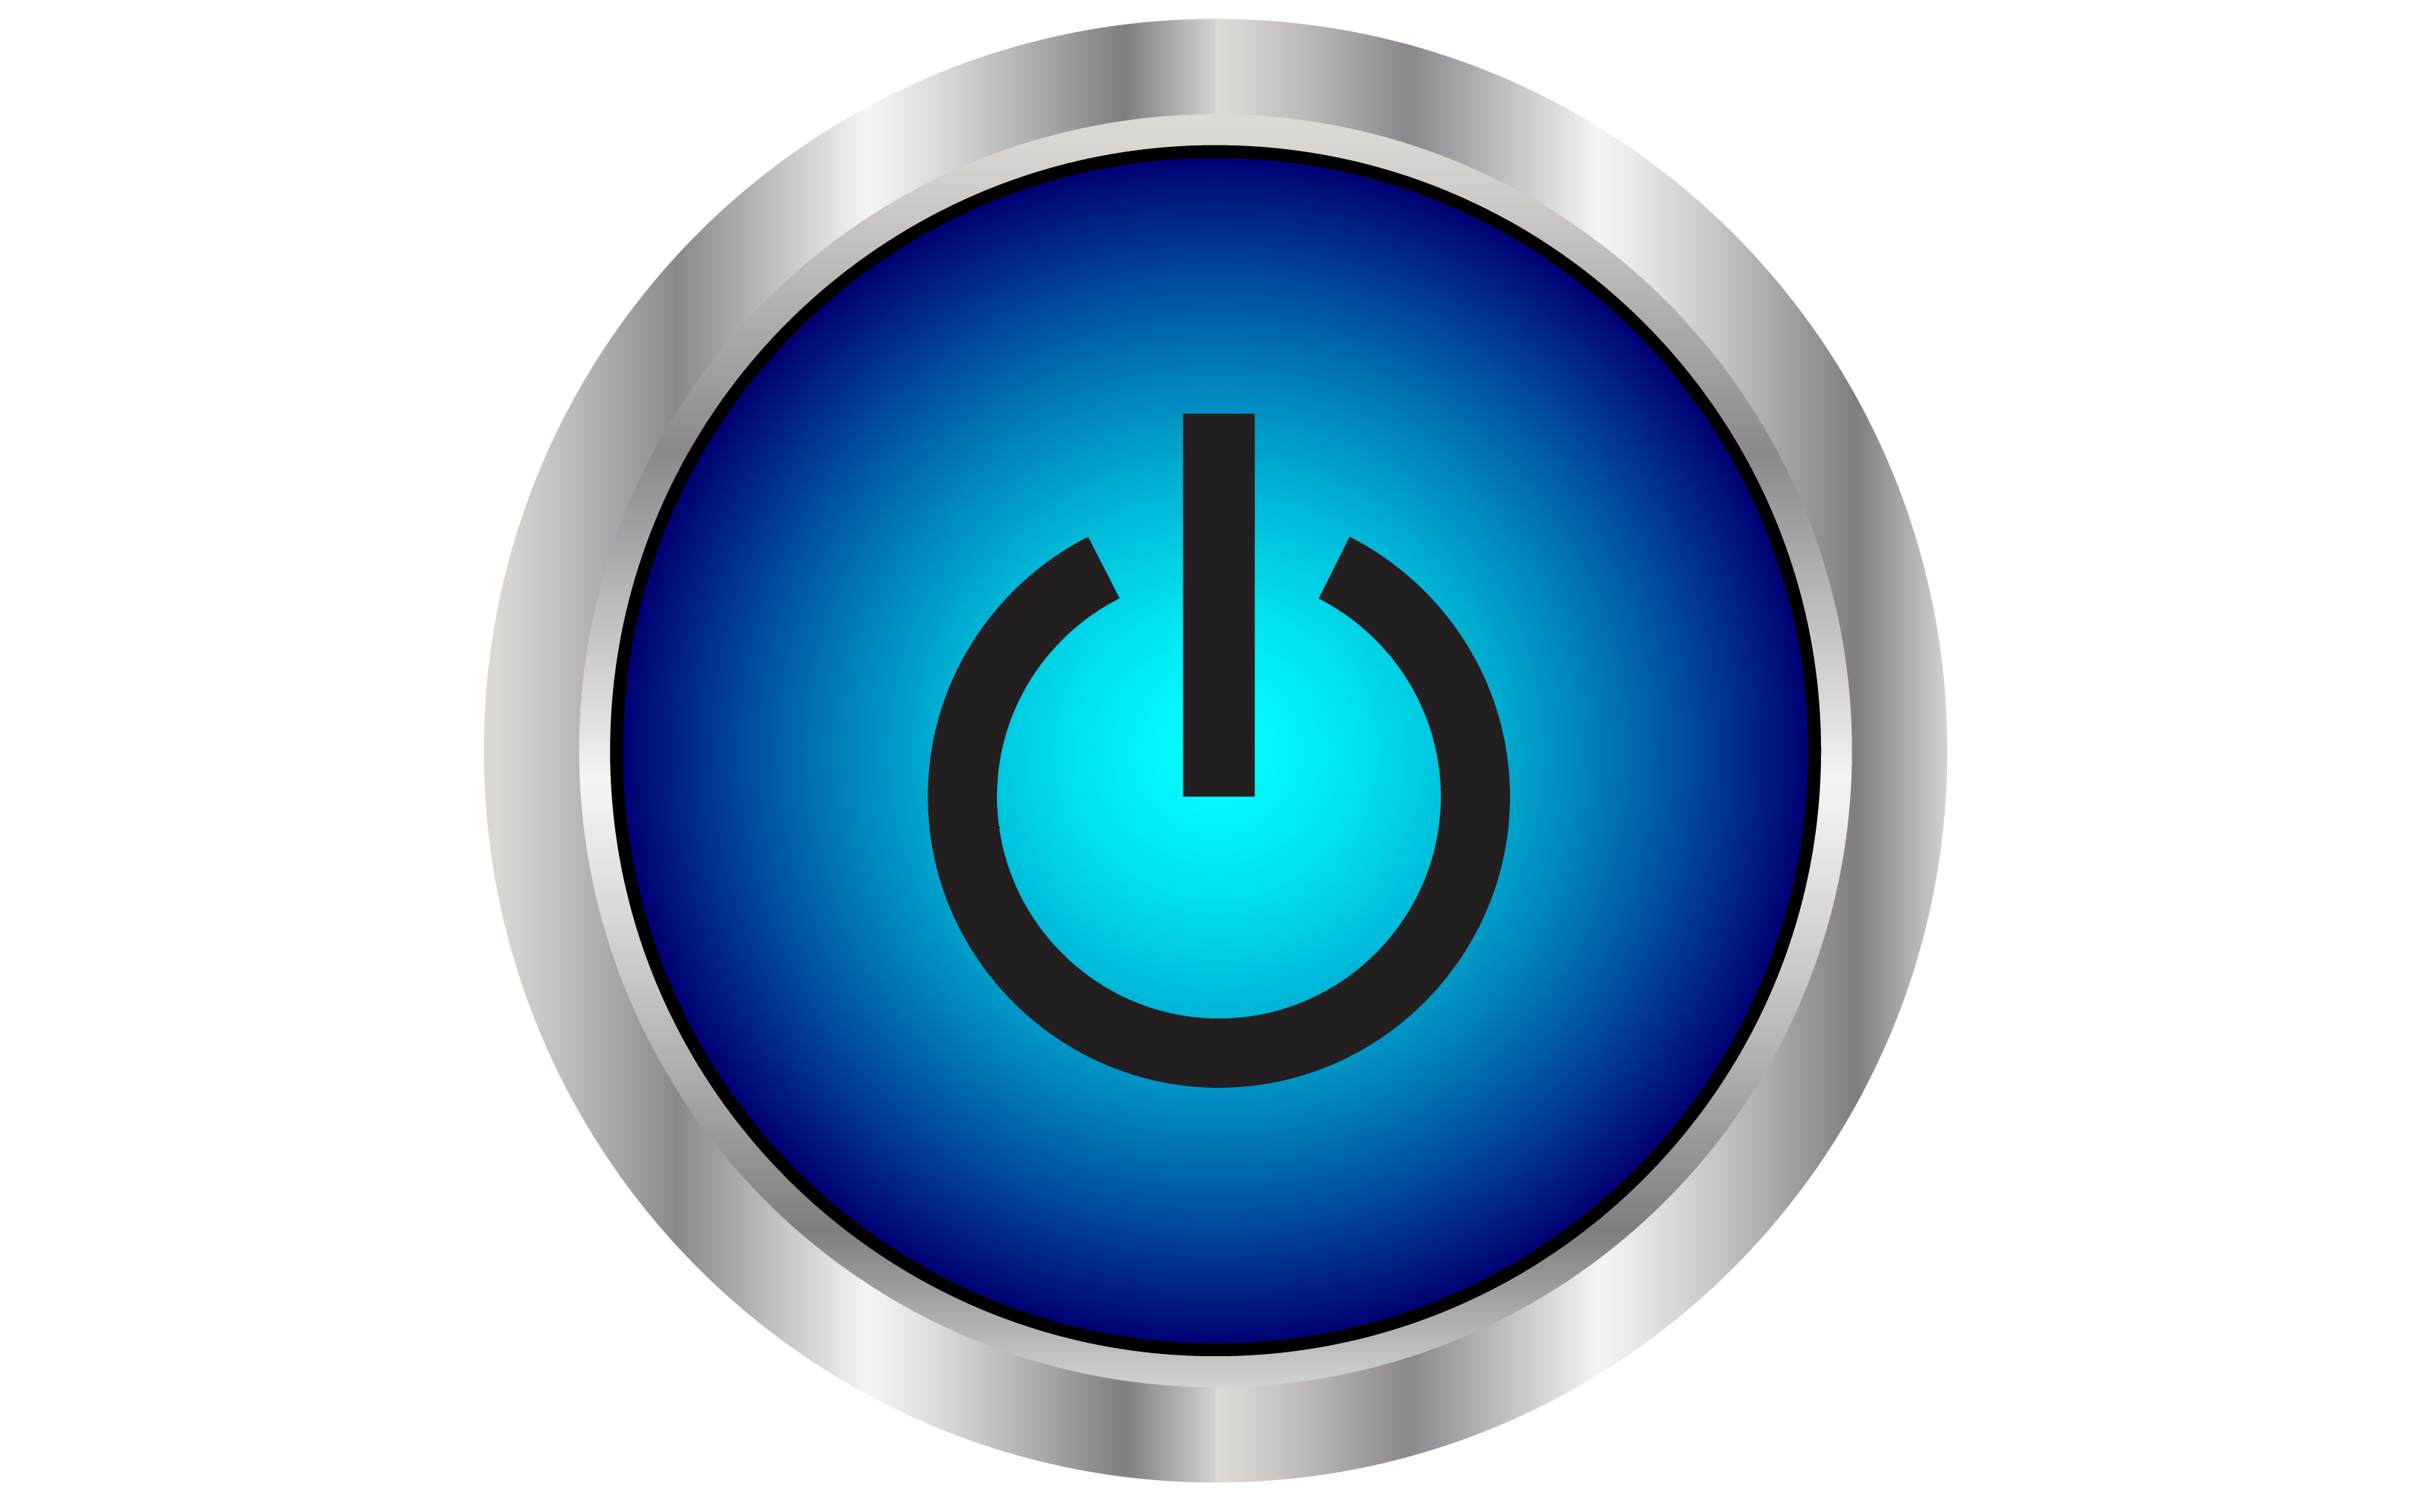 Button HD PNG - 94034